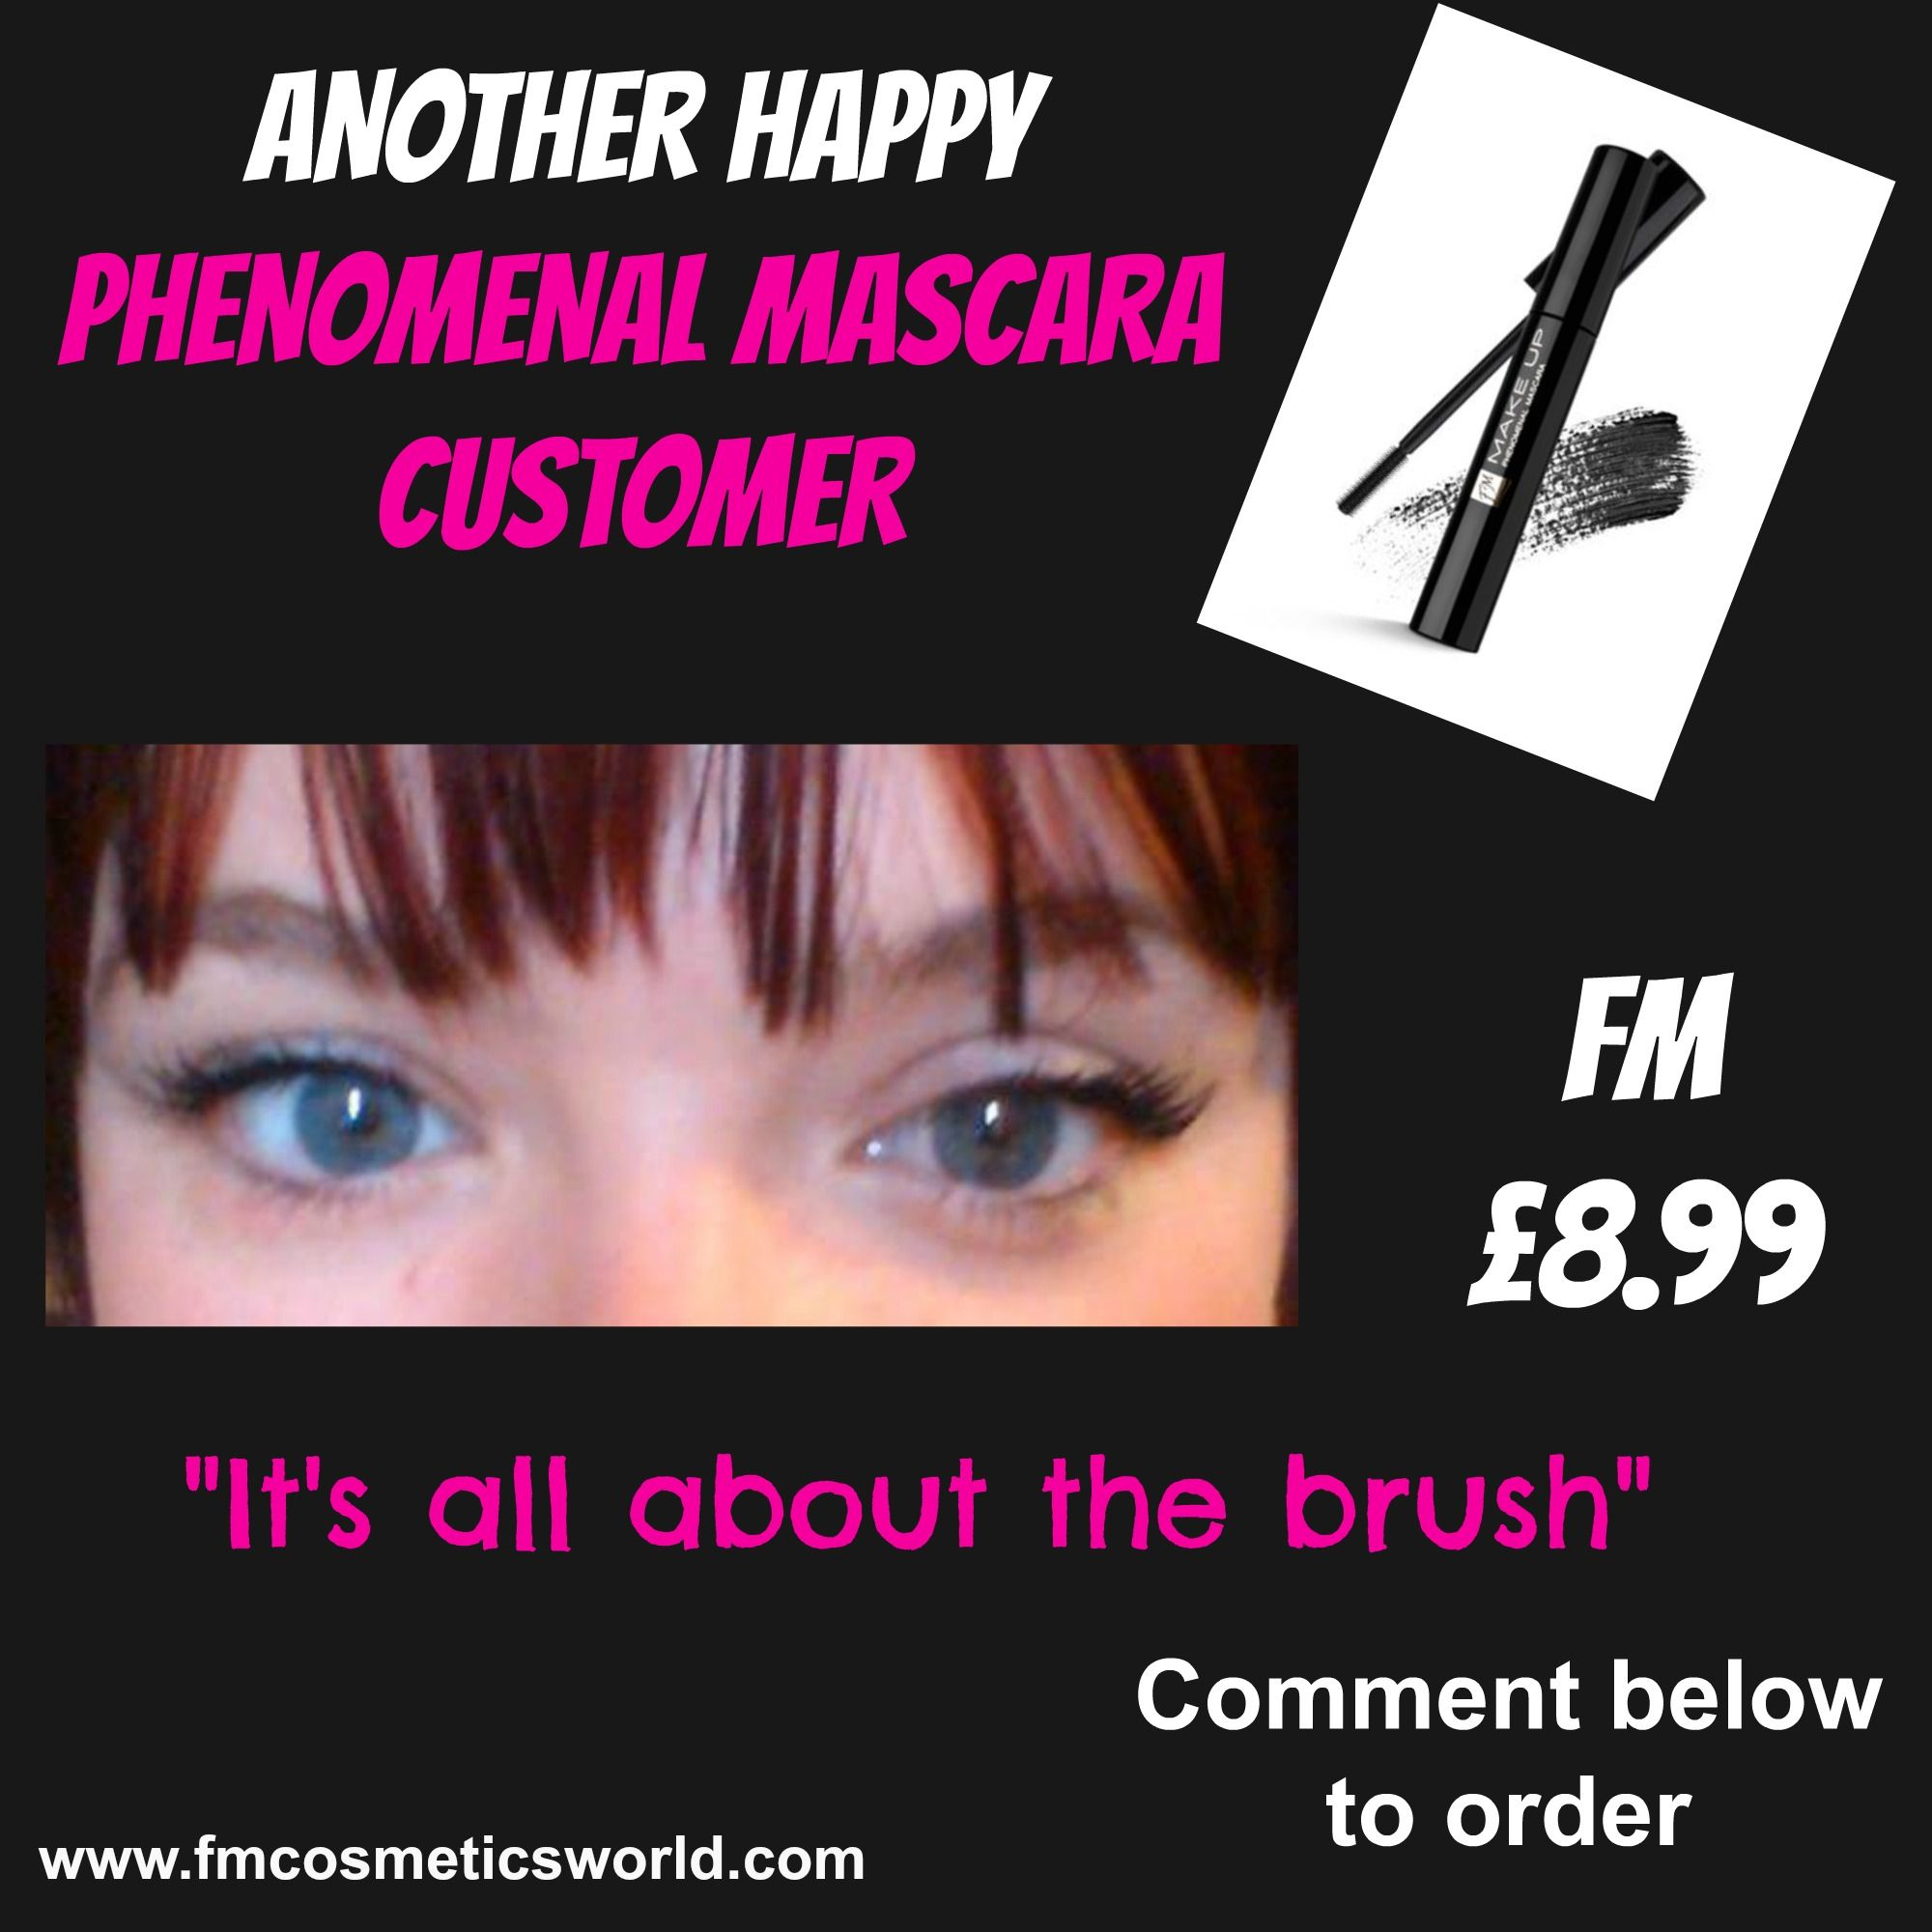 Another happy #fmcosmetics phenomenal #mascara customer!